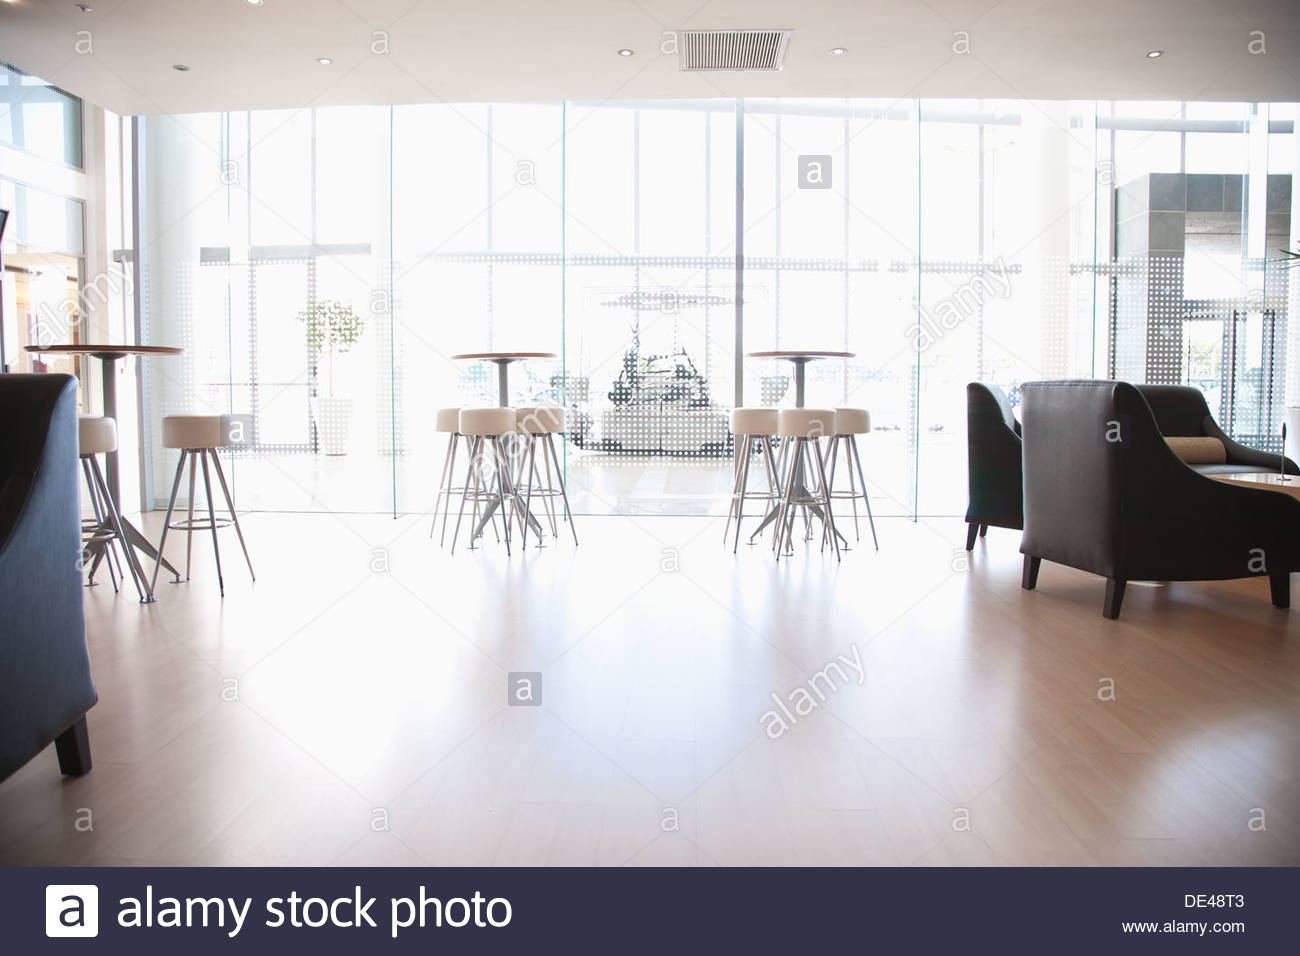 tables stockfotos tables bilder alamy. Black Bedroom Furniture Sets. Home Design Ideas